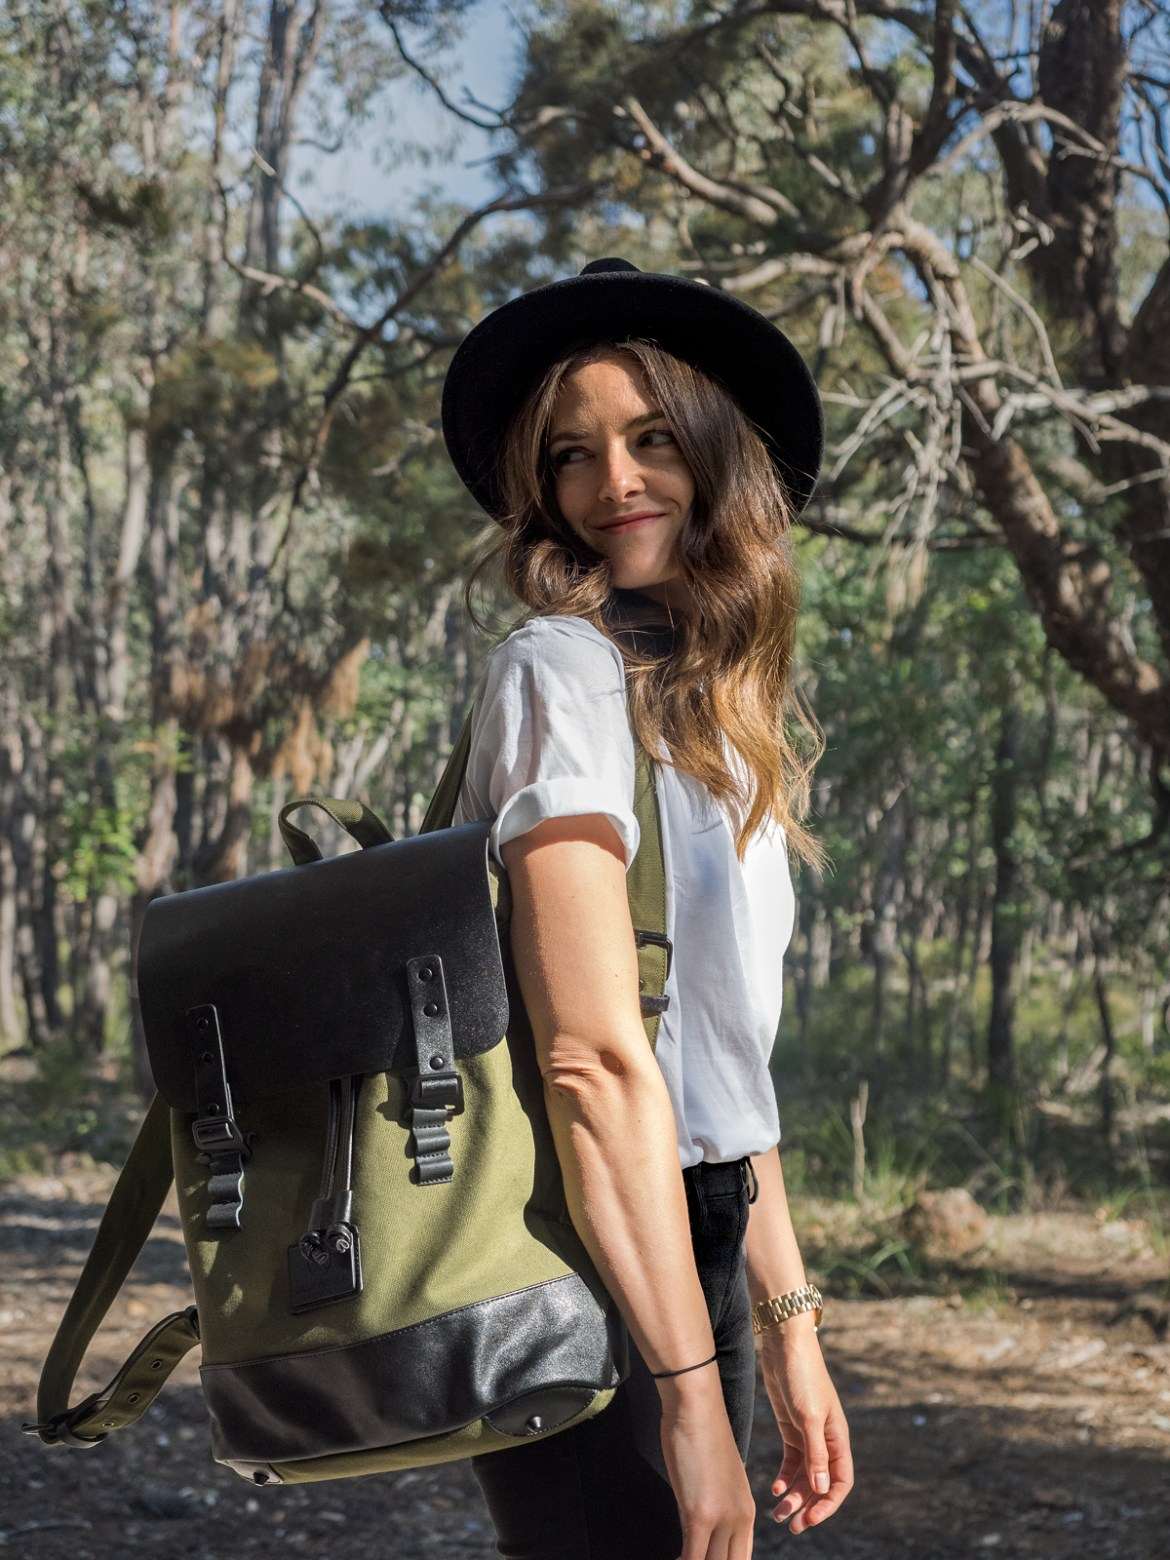 Gaston Luga Praper olive and black backpack worn by Inspiring Wit travel and fashion blogger